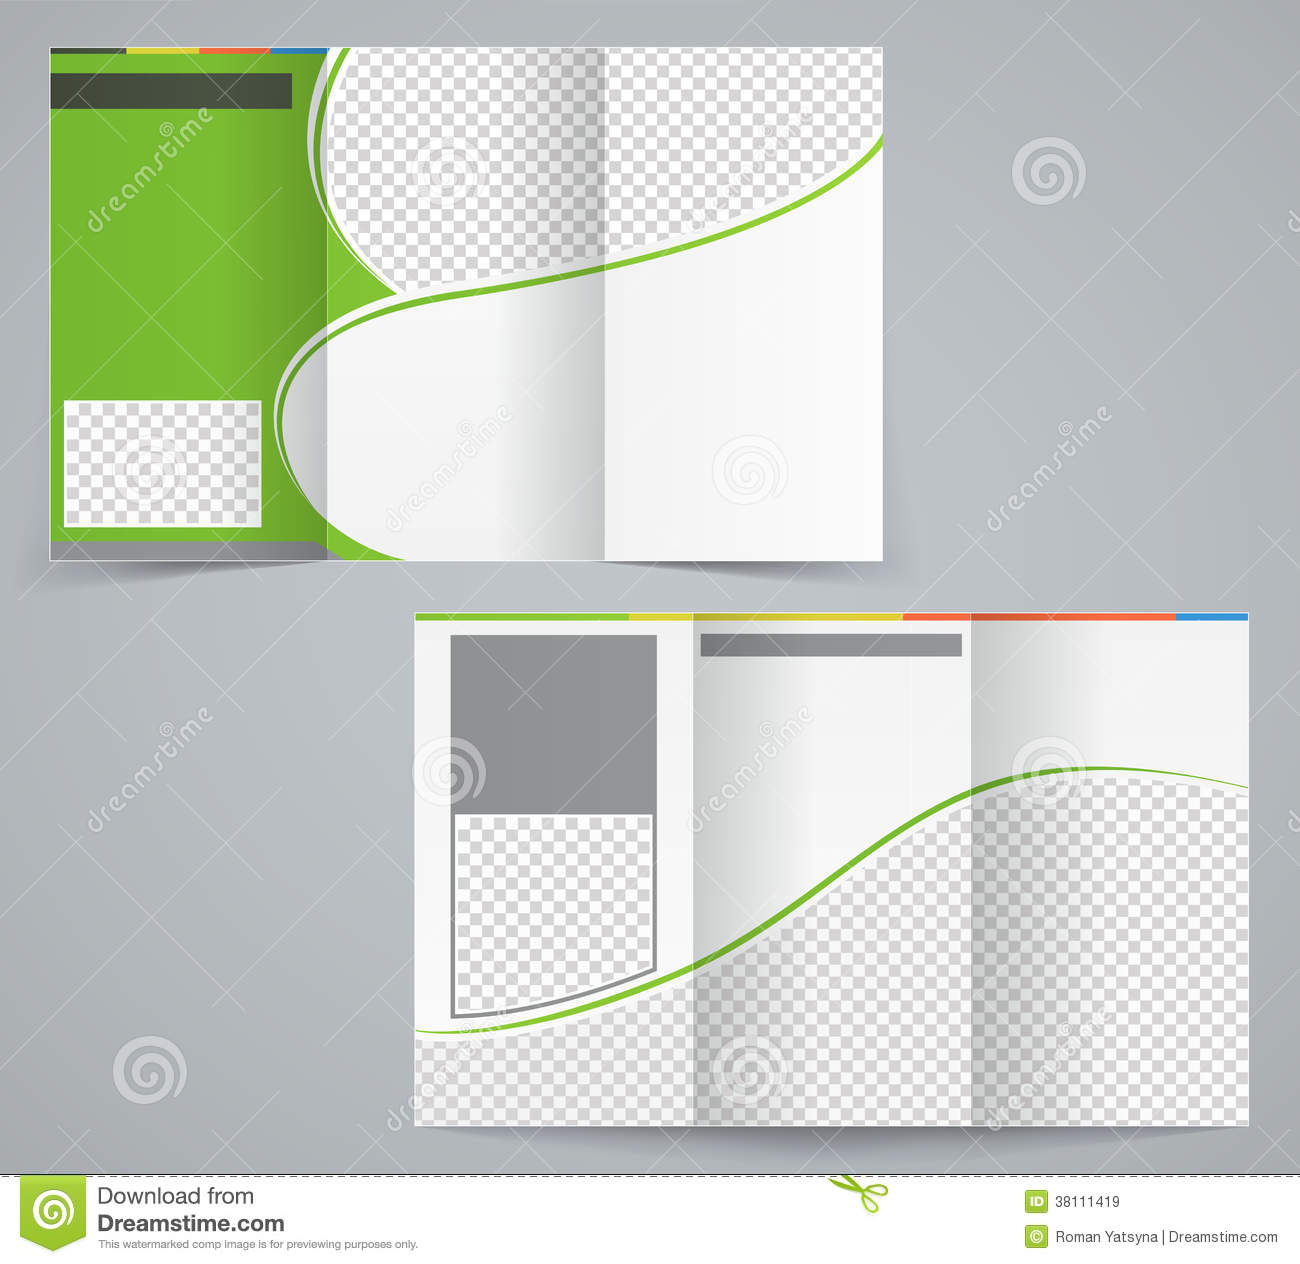 free illustrator templates - tri fold business brochure template vector green royalty